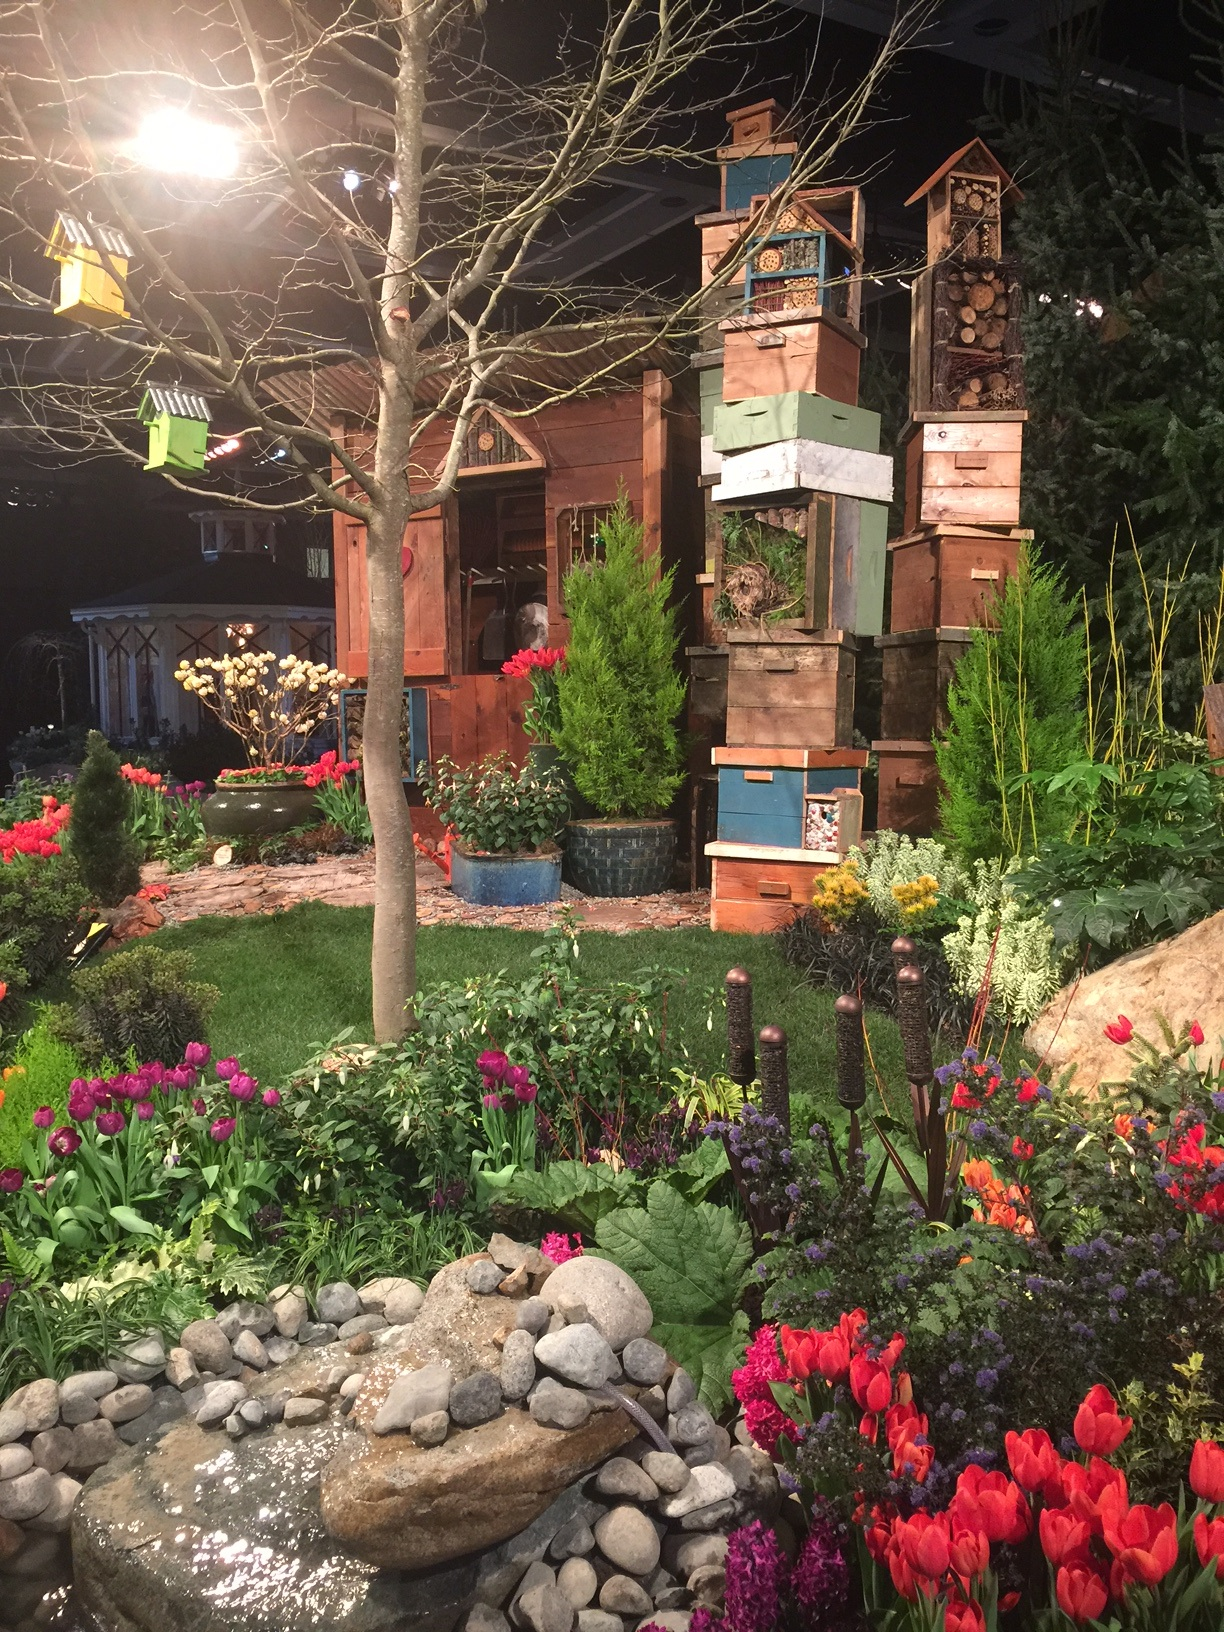 Snapshots from the gardens at the Northwest Flower and Garden Show ...